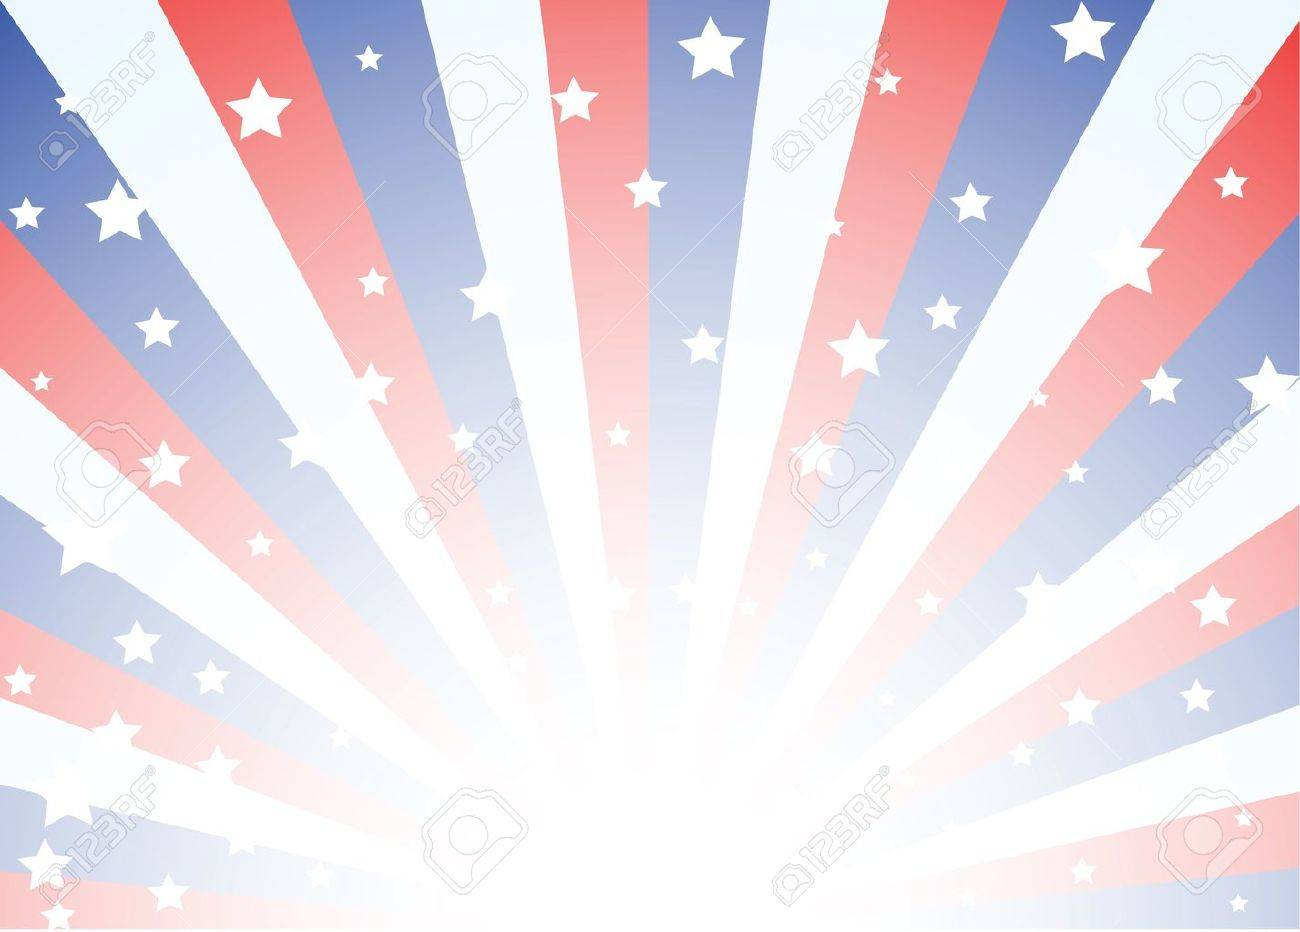 Background Featuring Red White And Blue Stripes With Stars Royalty